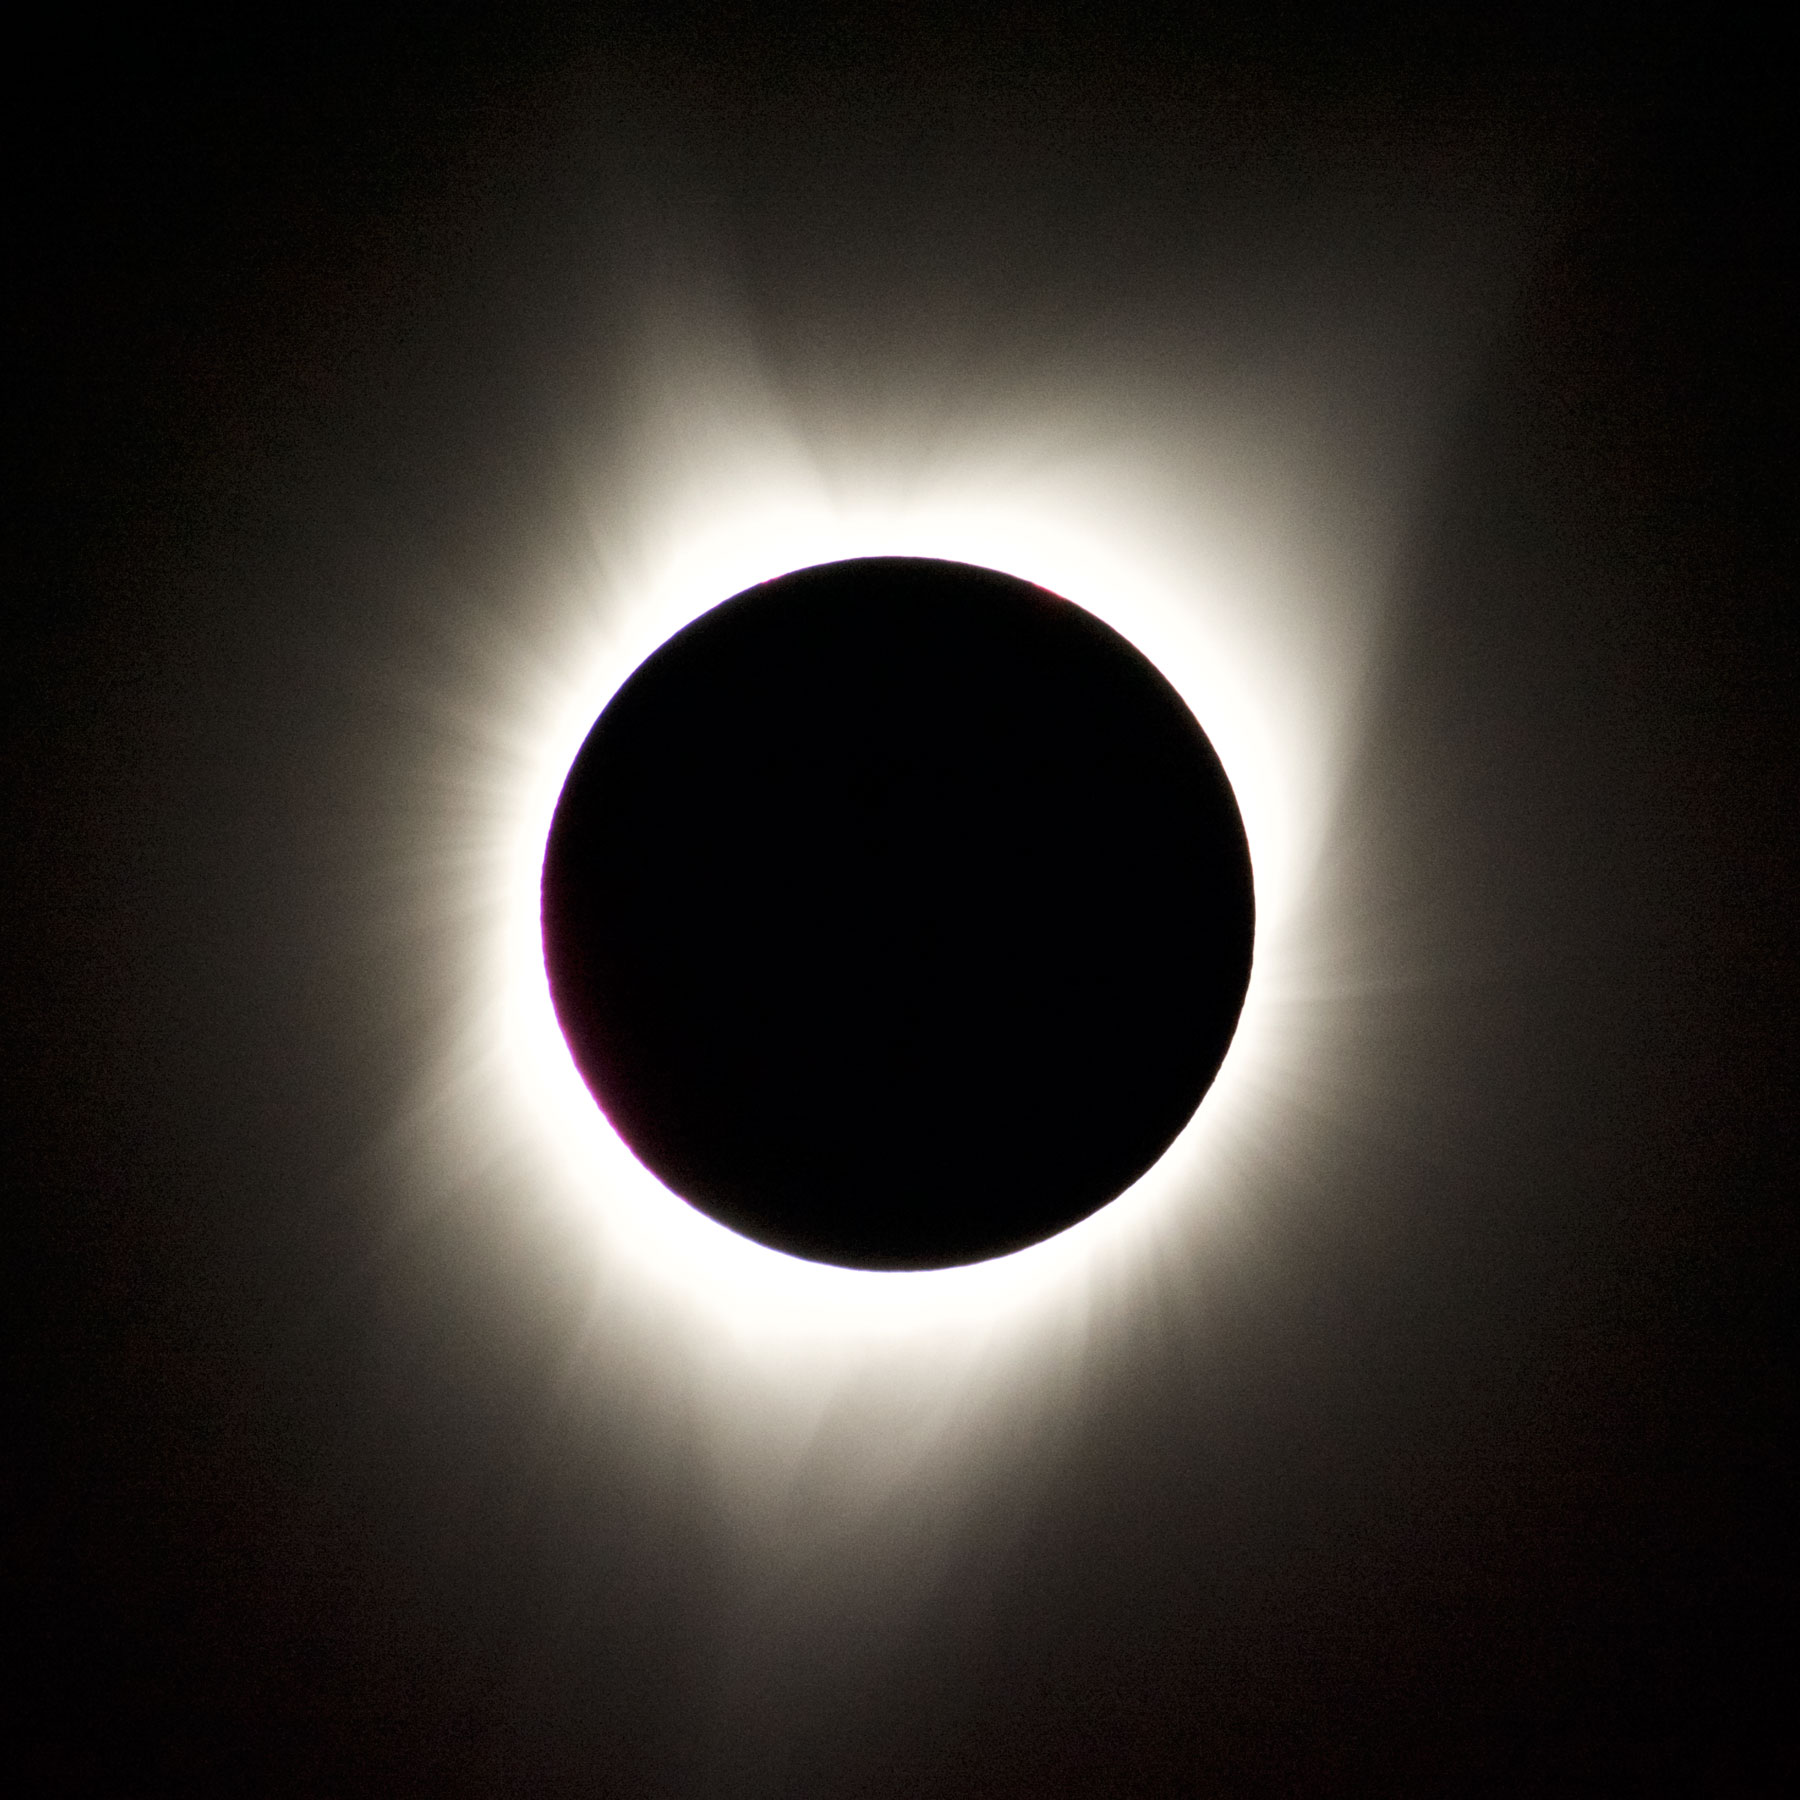 eclipse_corona_20170821